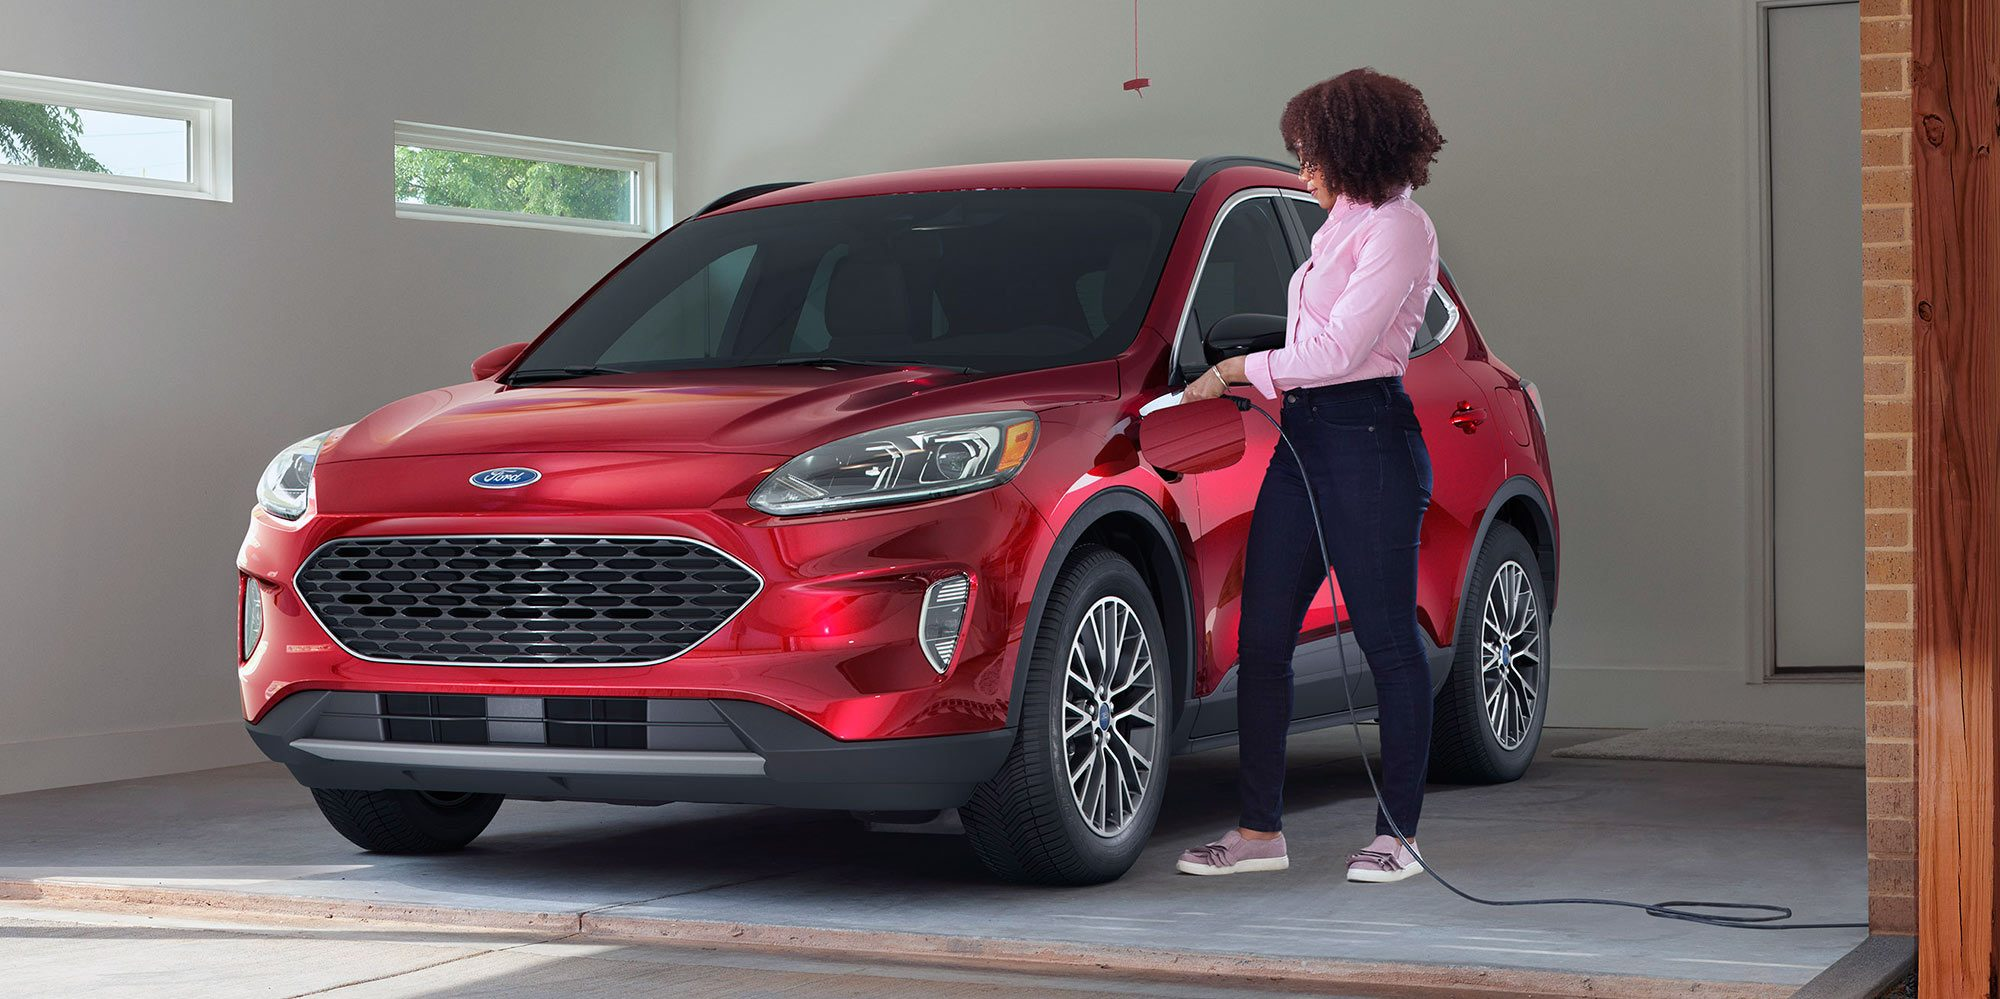 Ford Escape PHEV